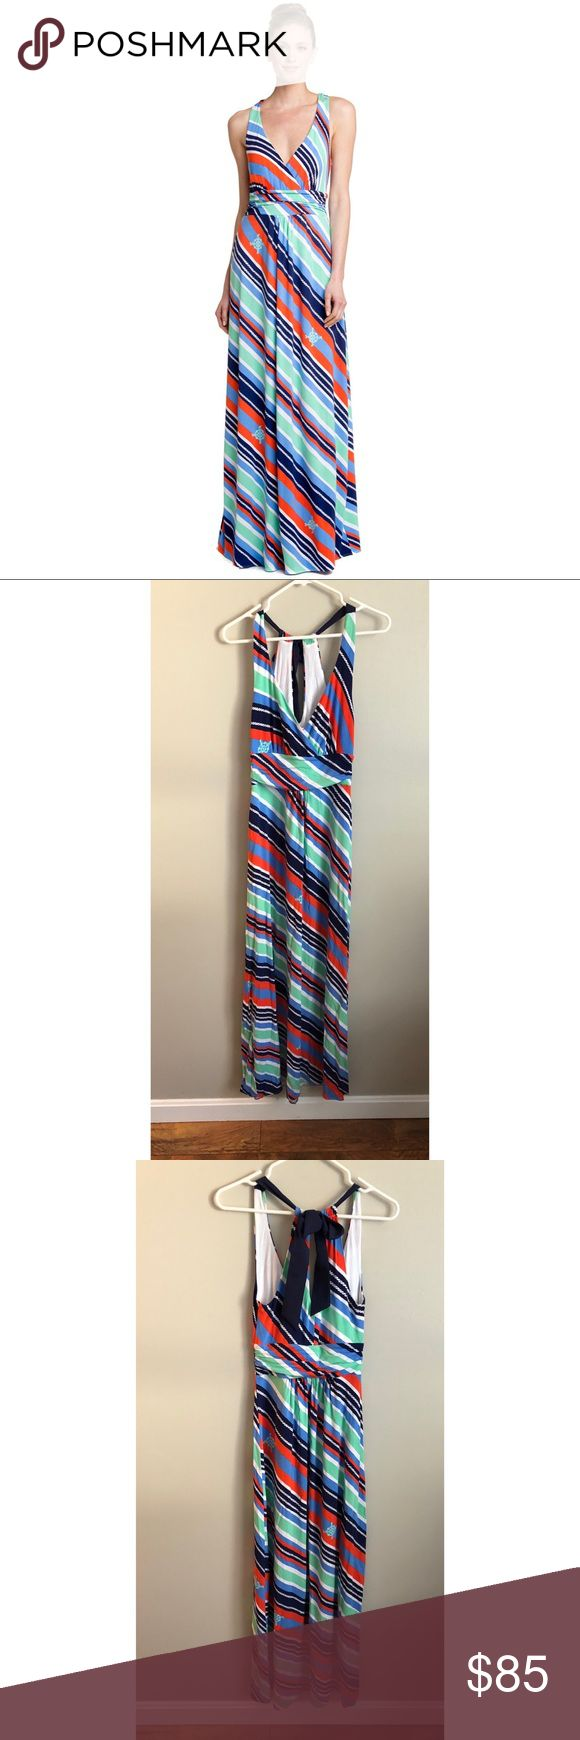 Lilly Pulitzer amada stripe nautical maxi dress Lilly Pulitzer amada stripe nautical maxi dress! Soft and comfortable bright striped maxi dress with nautical compass detail. Low v neck with tie back detail. Super cute and comfortable! In excellent condition, size xs. Lilly Pulitzer Dresses Maxi